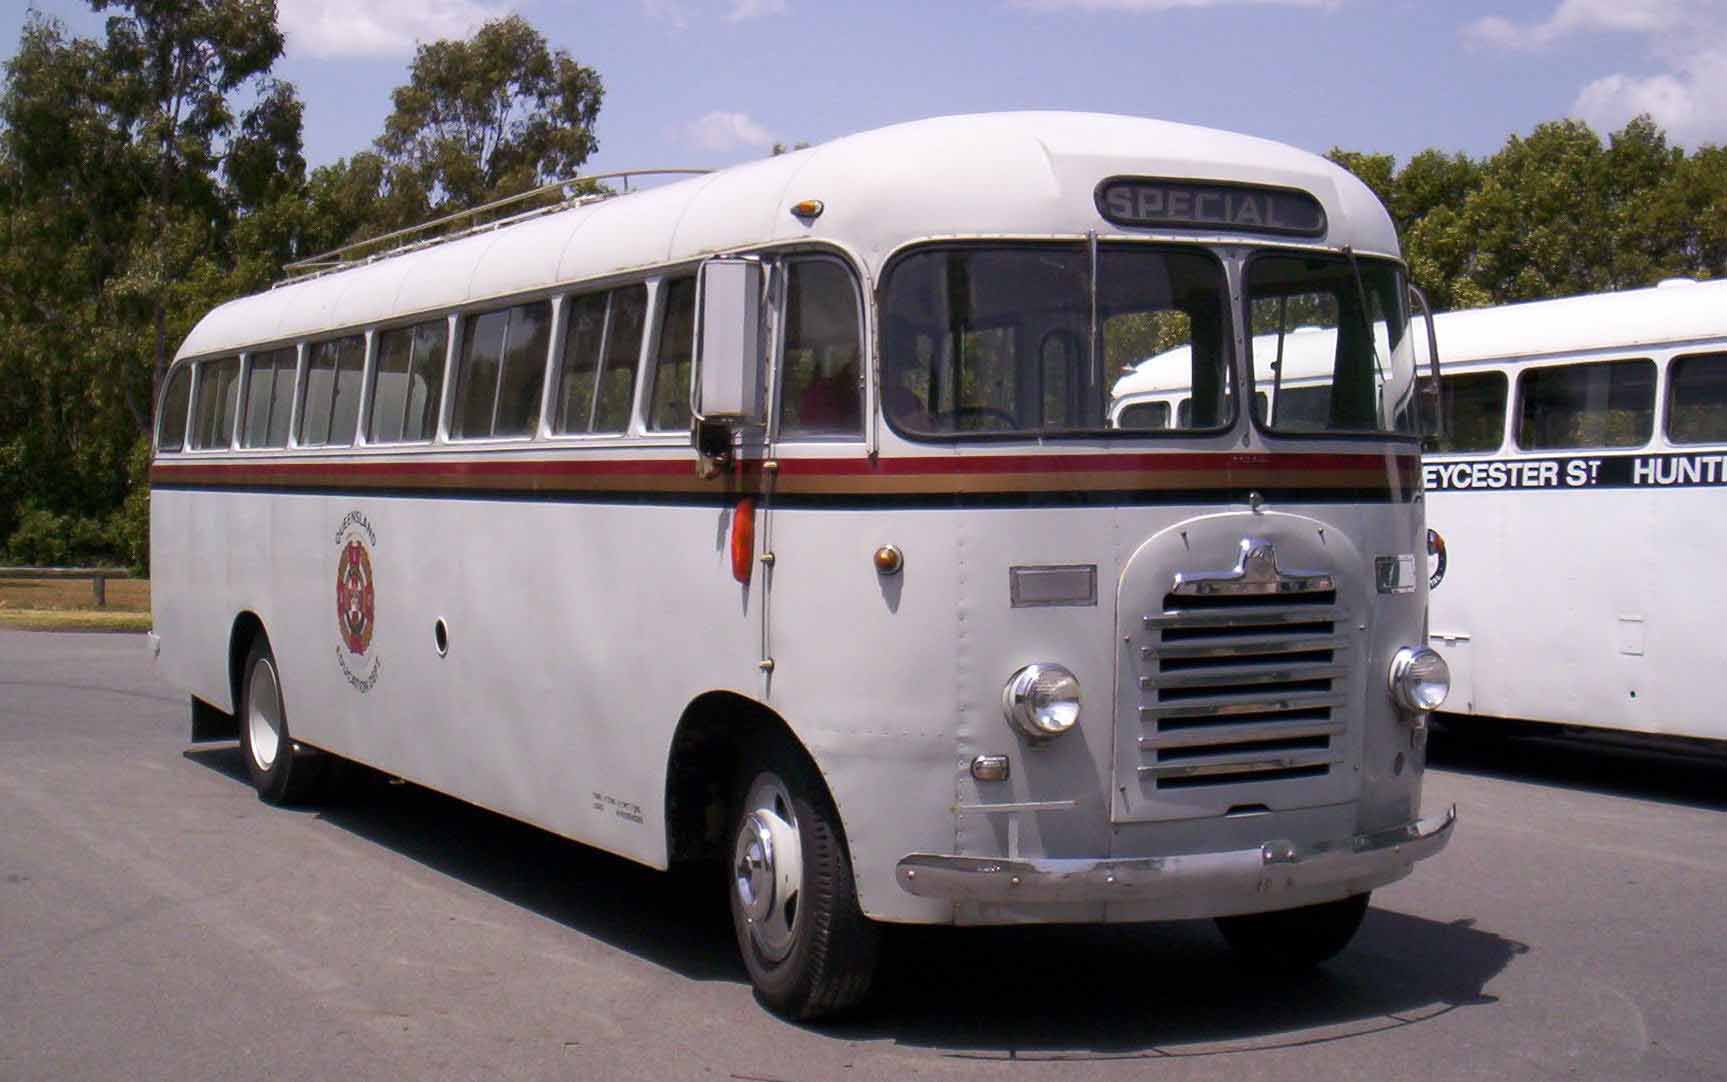 Bus after its service and repair